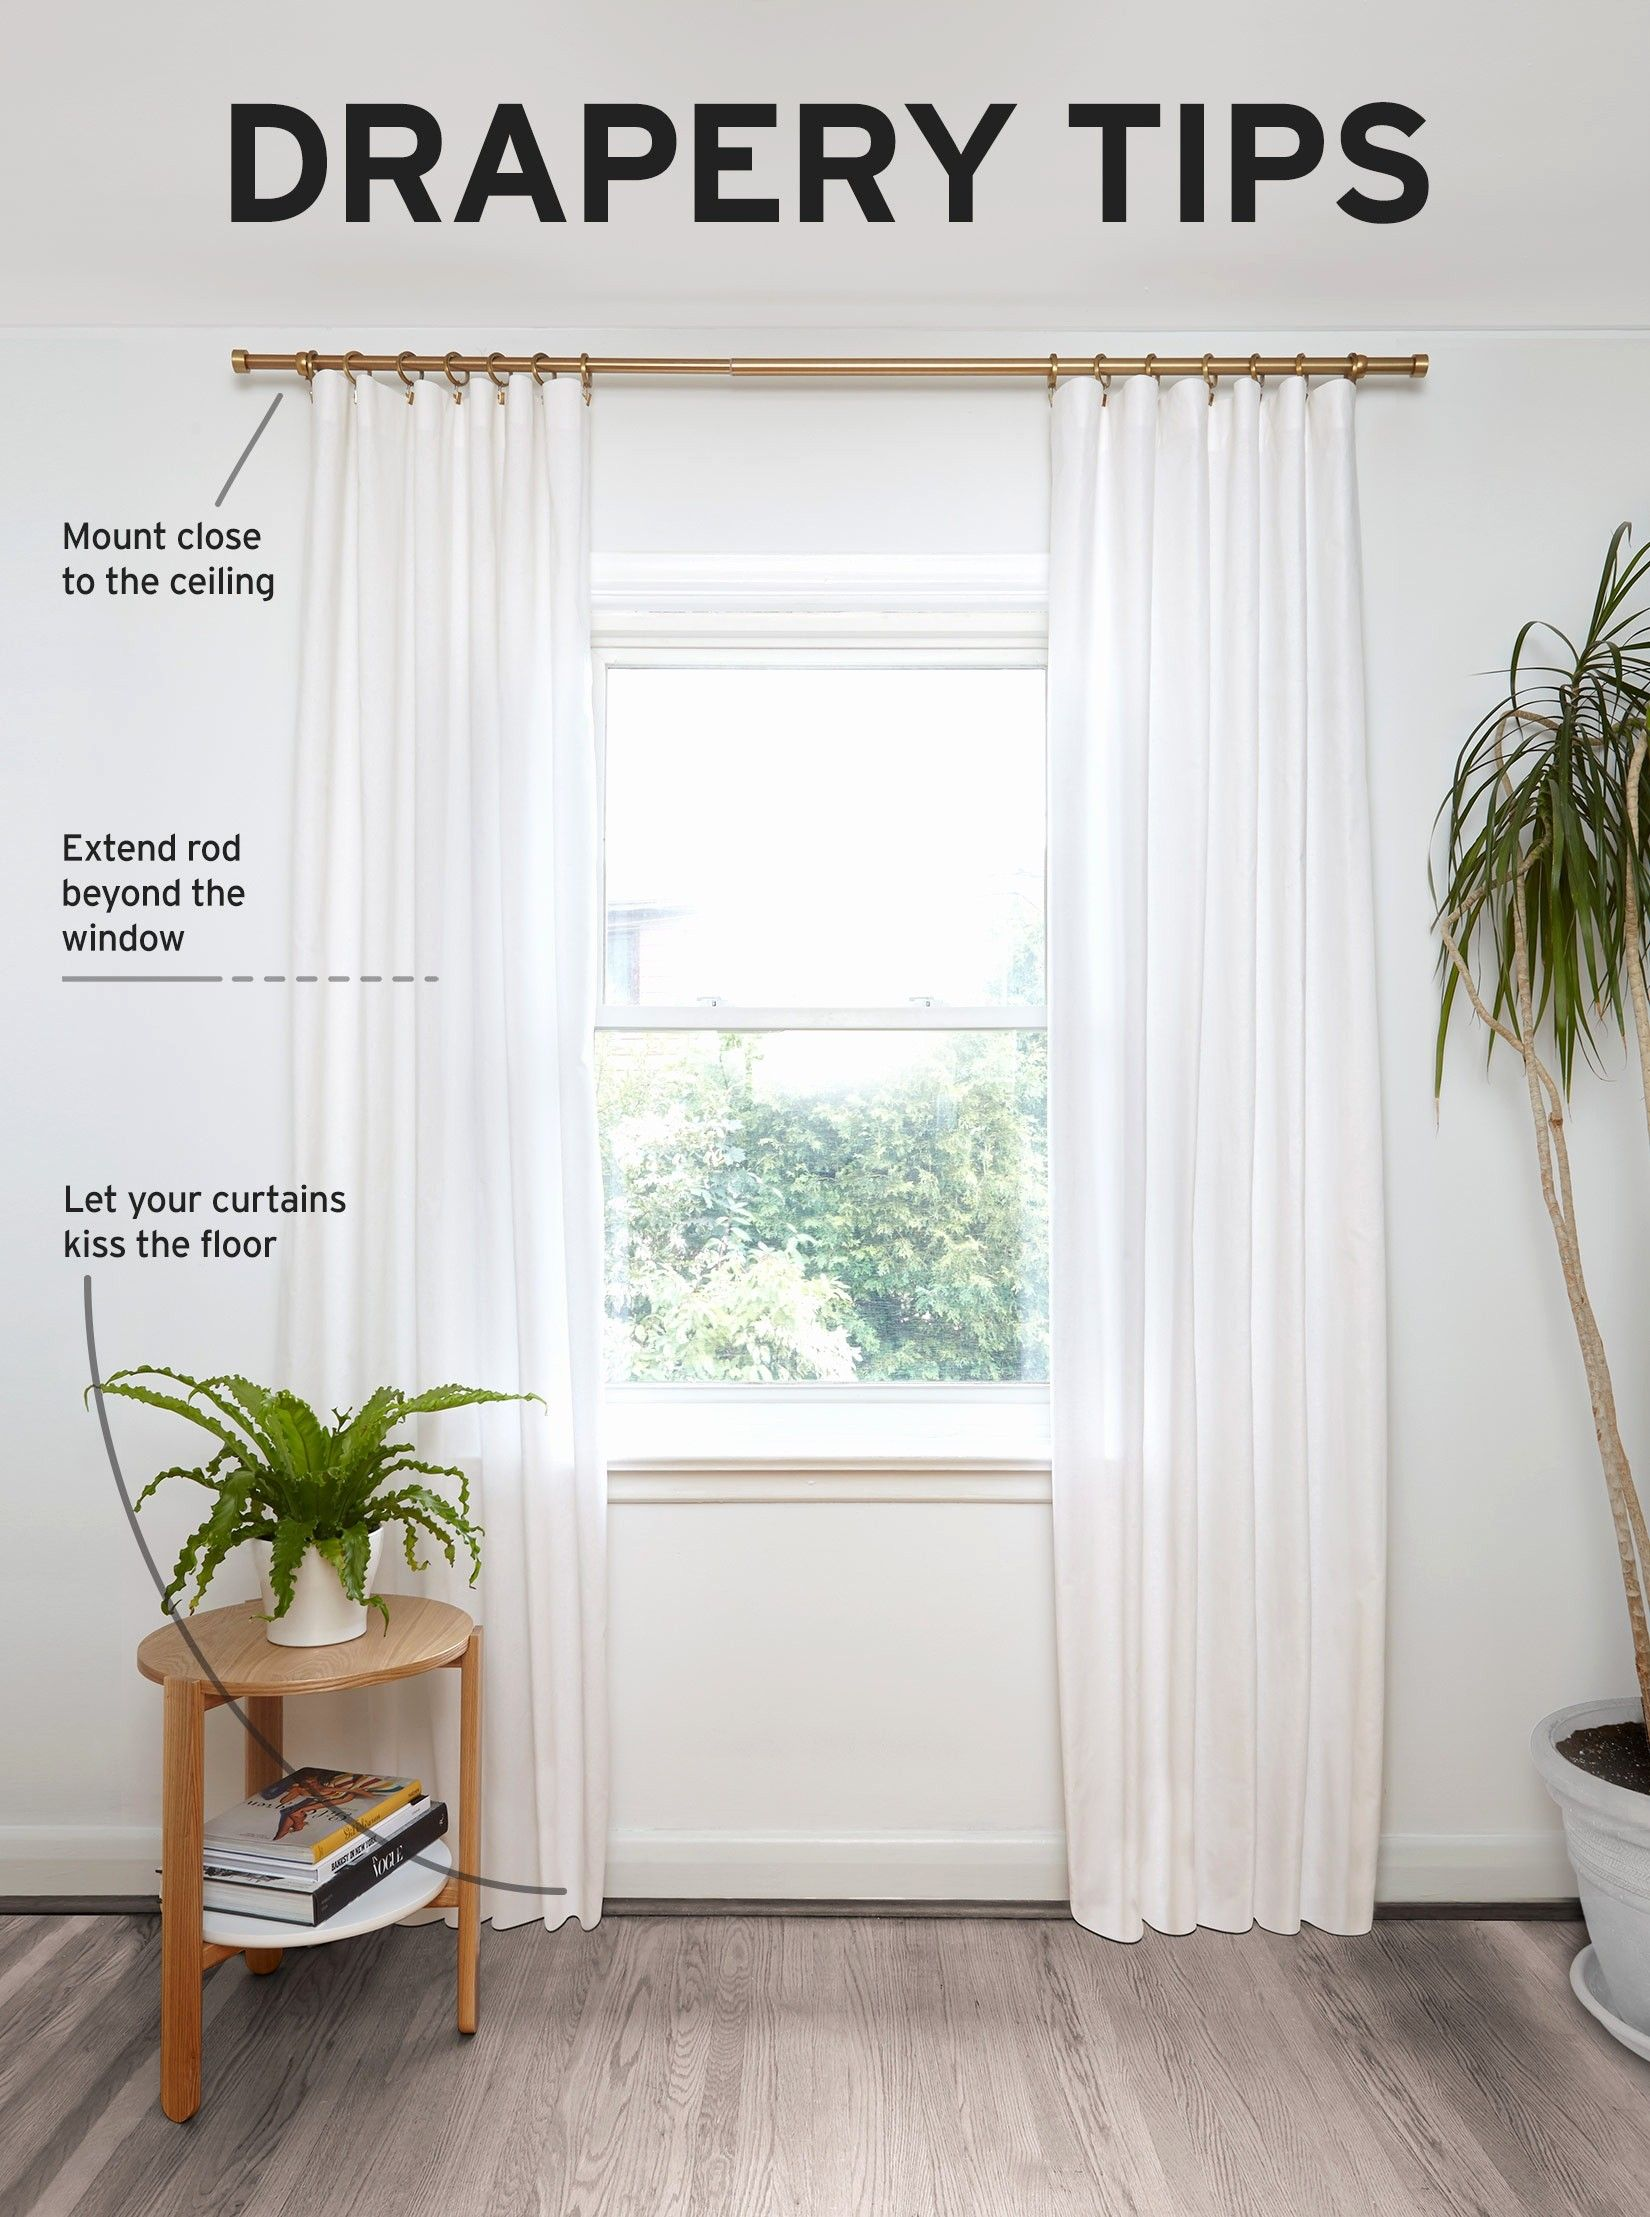 You Searched For Faucet Curtains Inside Window Frame Popular